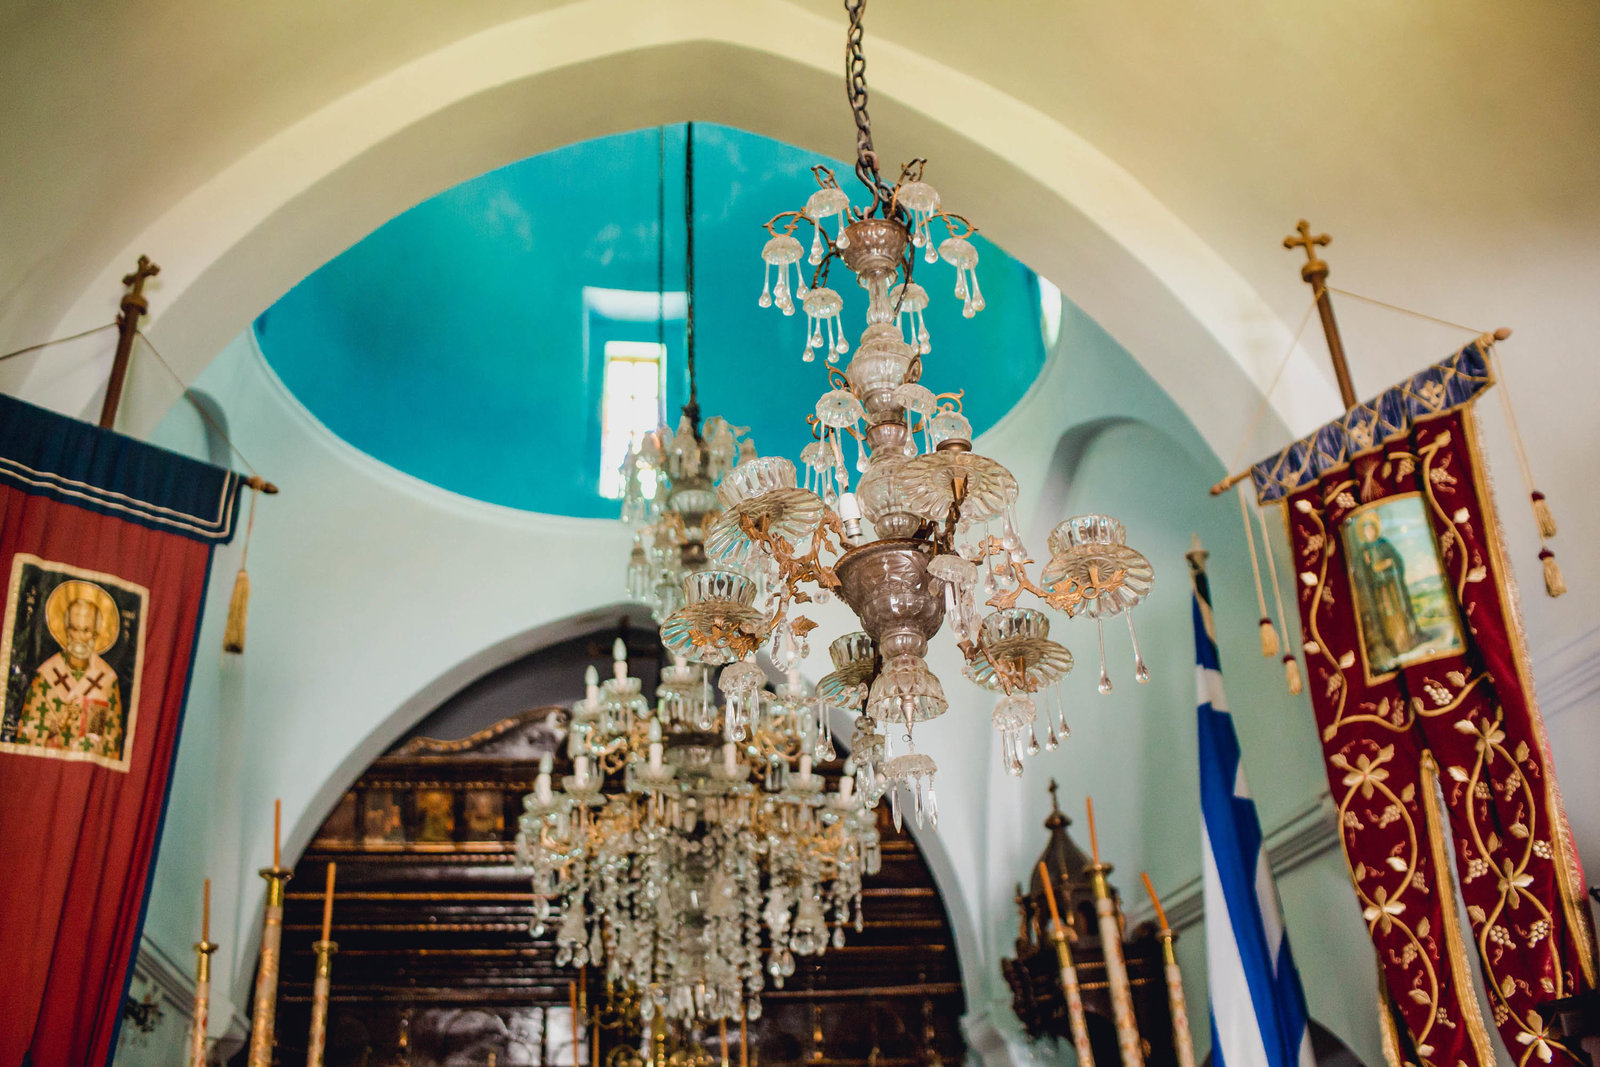 inside-chapel-pyrgos-destination-travel-santorini-wedding-kate-timbers-photo-2682